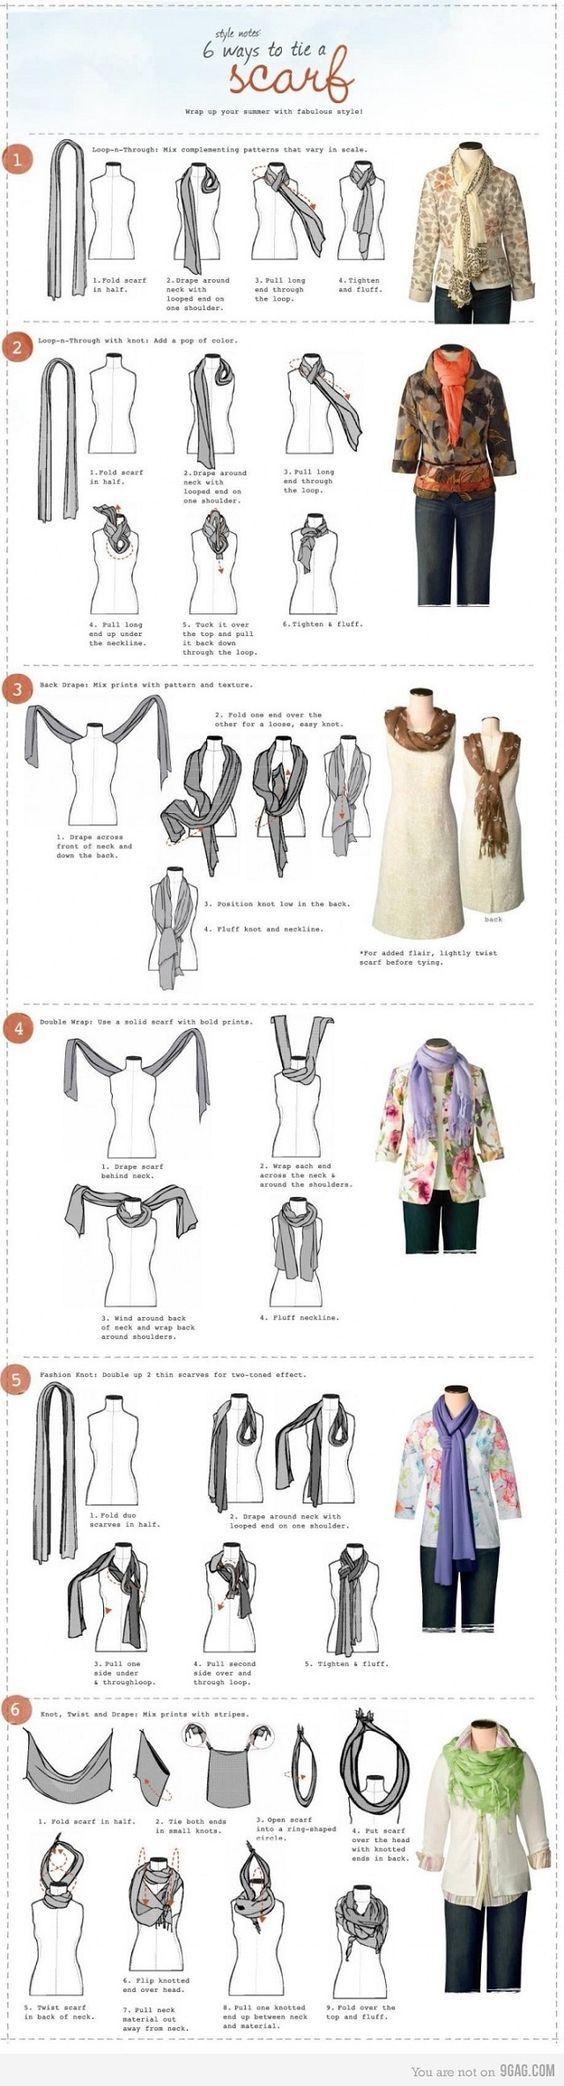 six different ways to tie a scarf